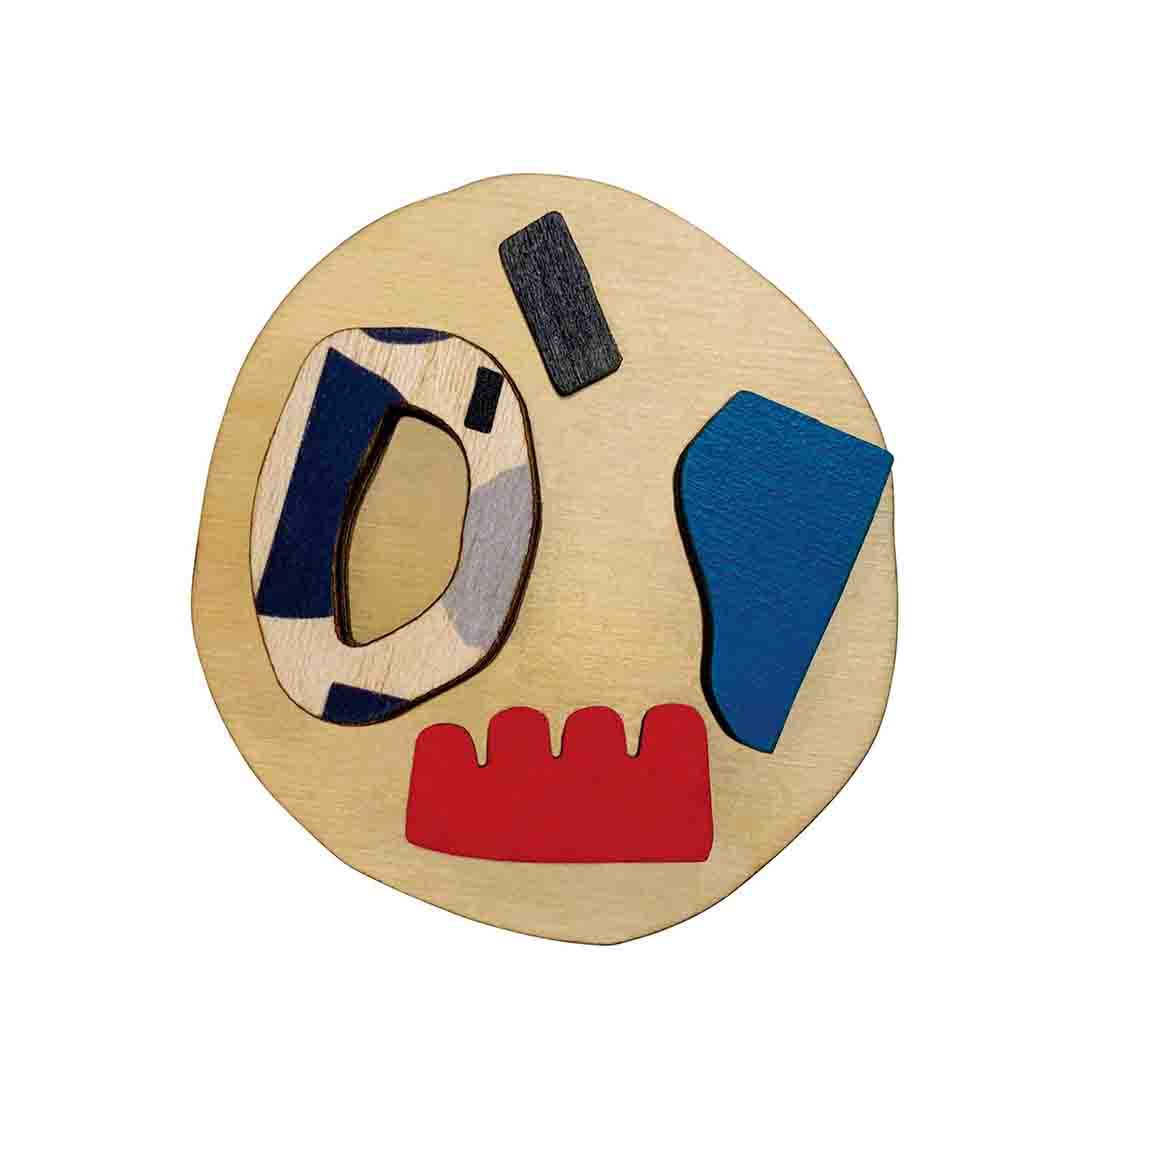 Abstract brooch with shapes   Trada Marketplace